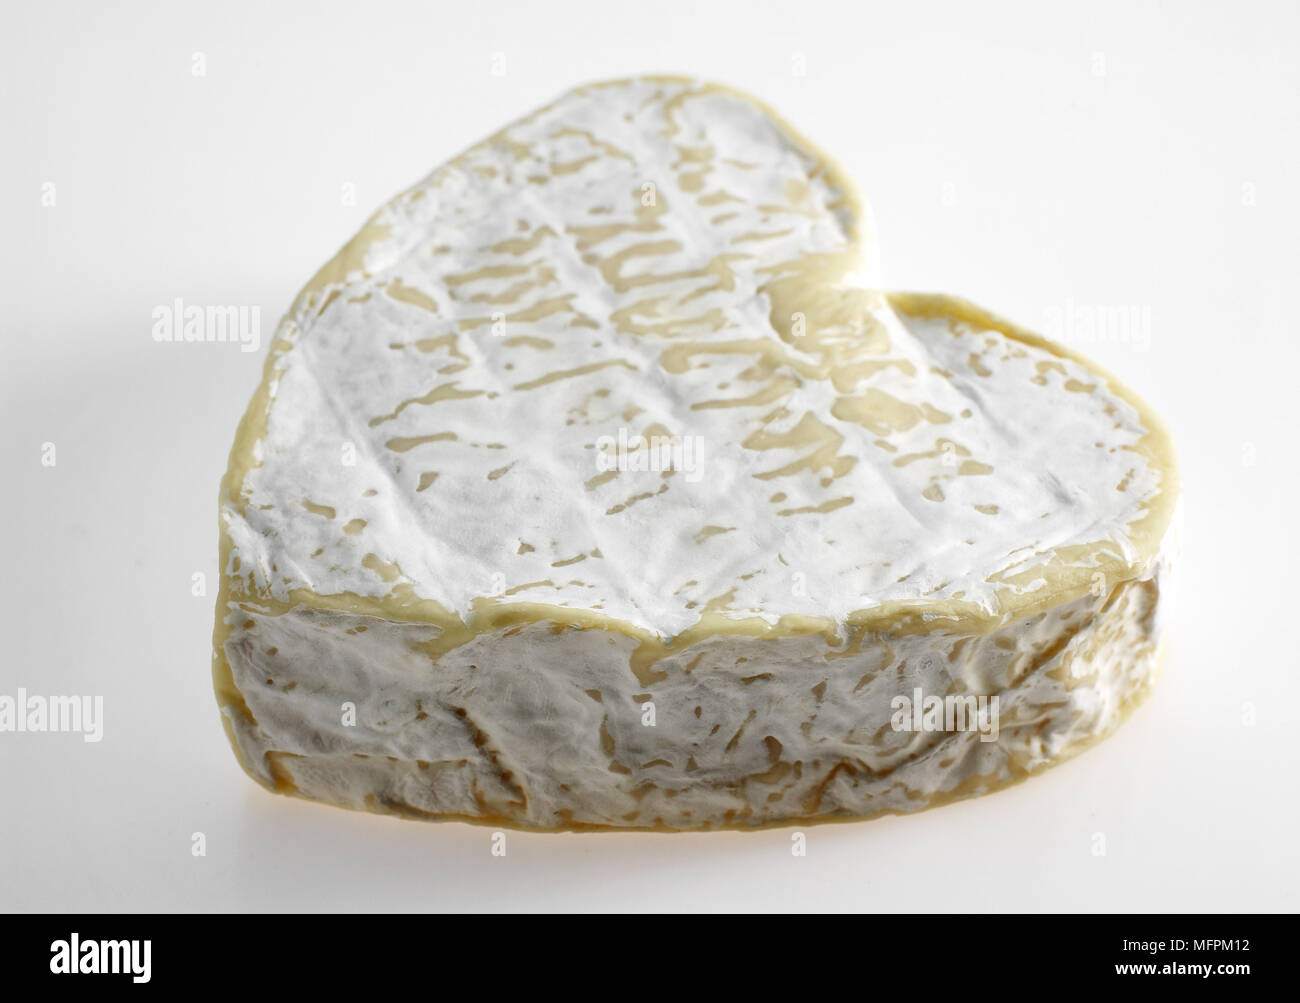 Neufchatel, French Cheese produced in Normandy from Cow's Milk - Stock Image